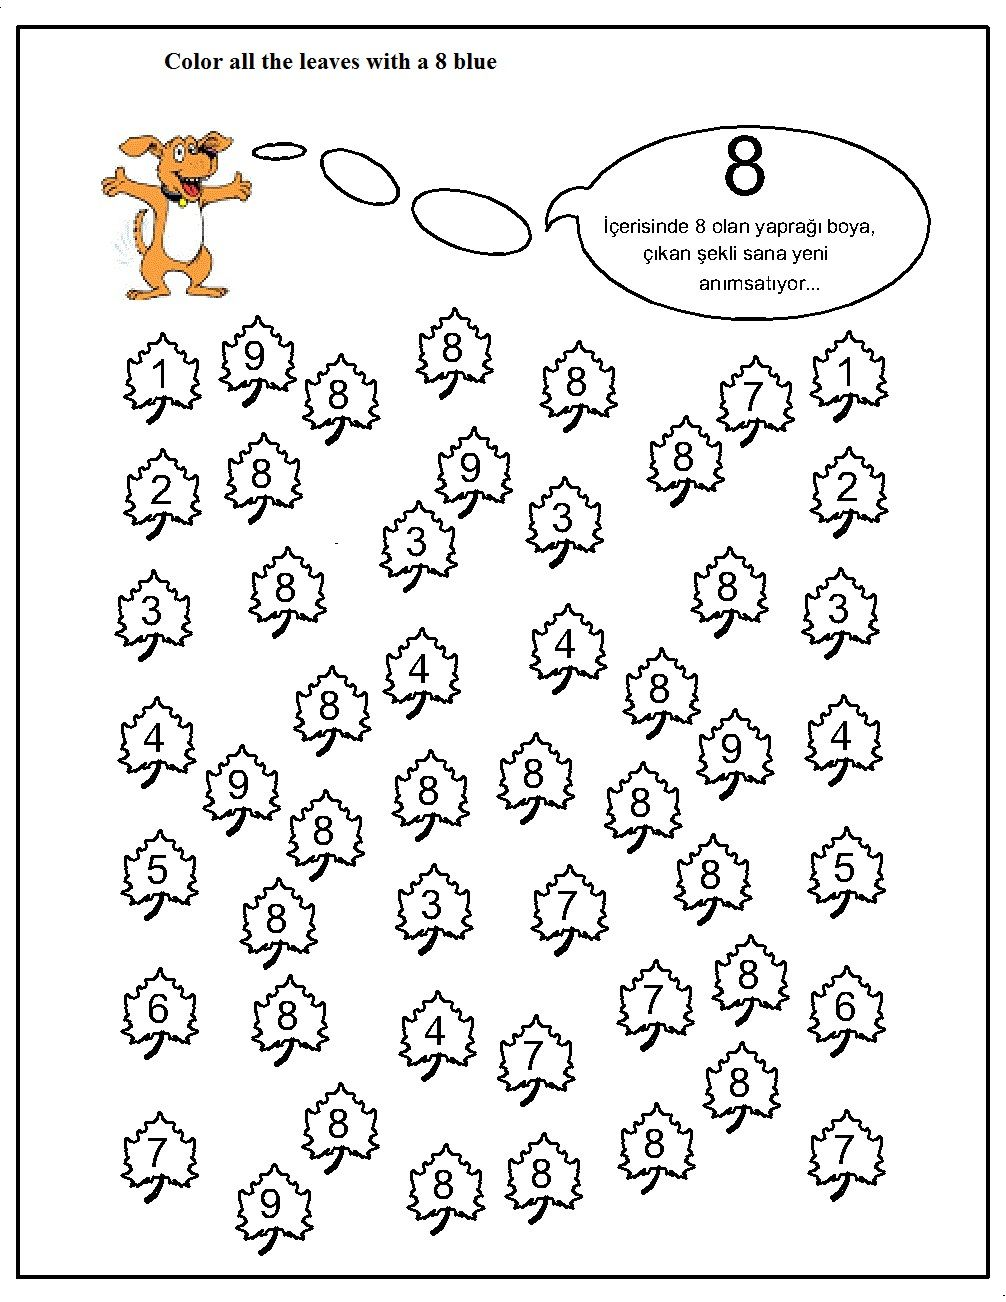 worksheet Number 16 Worksheet For Preschoolers number hunt worksheet for kids 16 ahmet pinterest worksheets 16